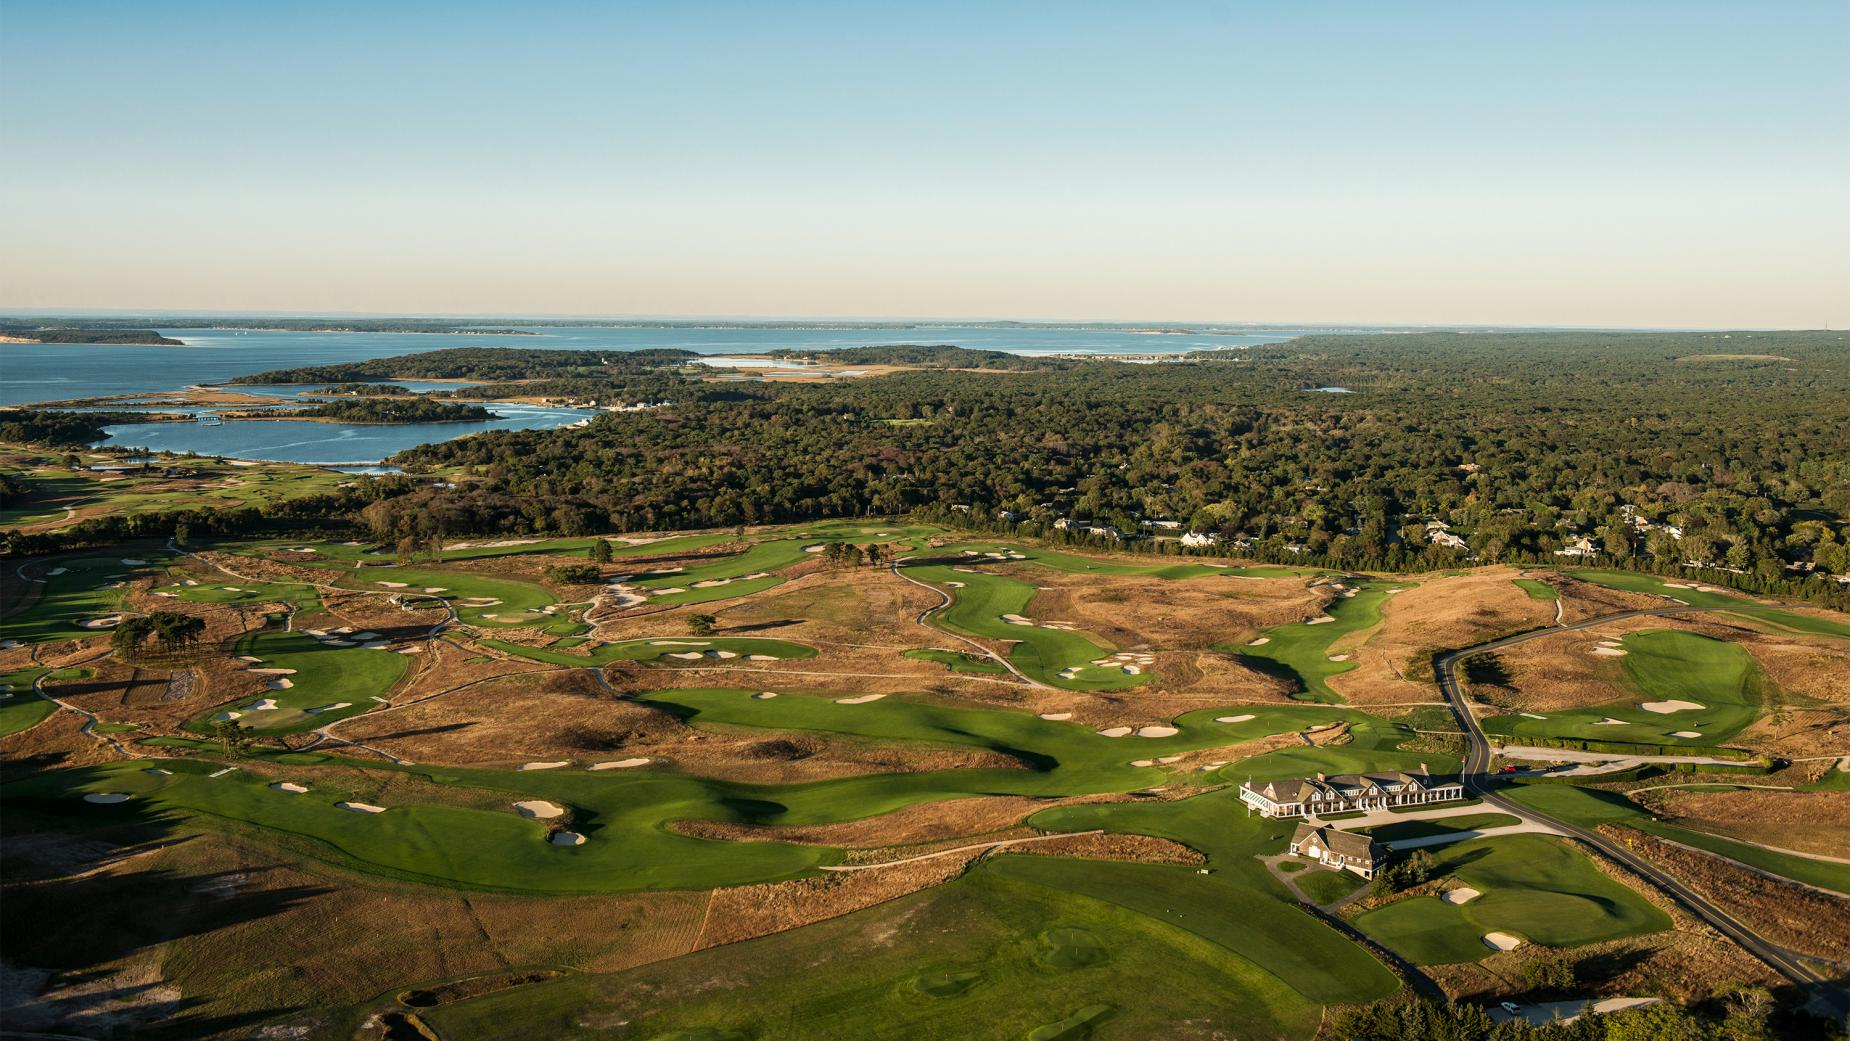 Shinnecock-Hills-GC-aerial.jpg